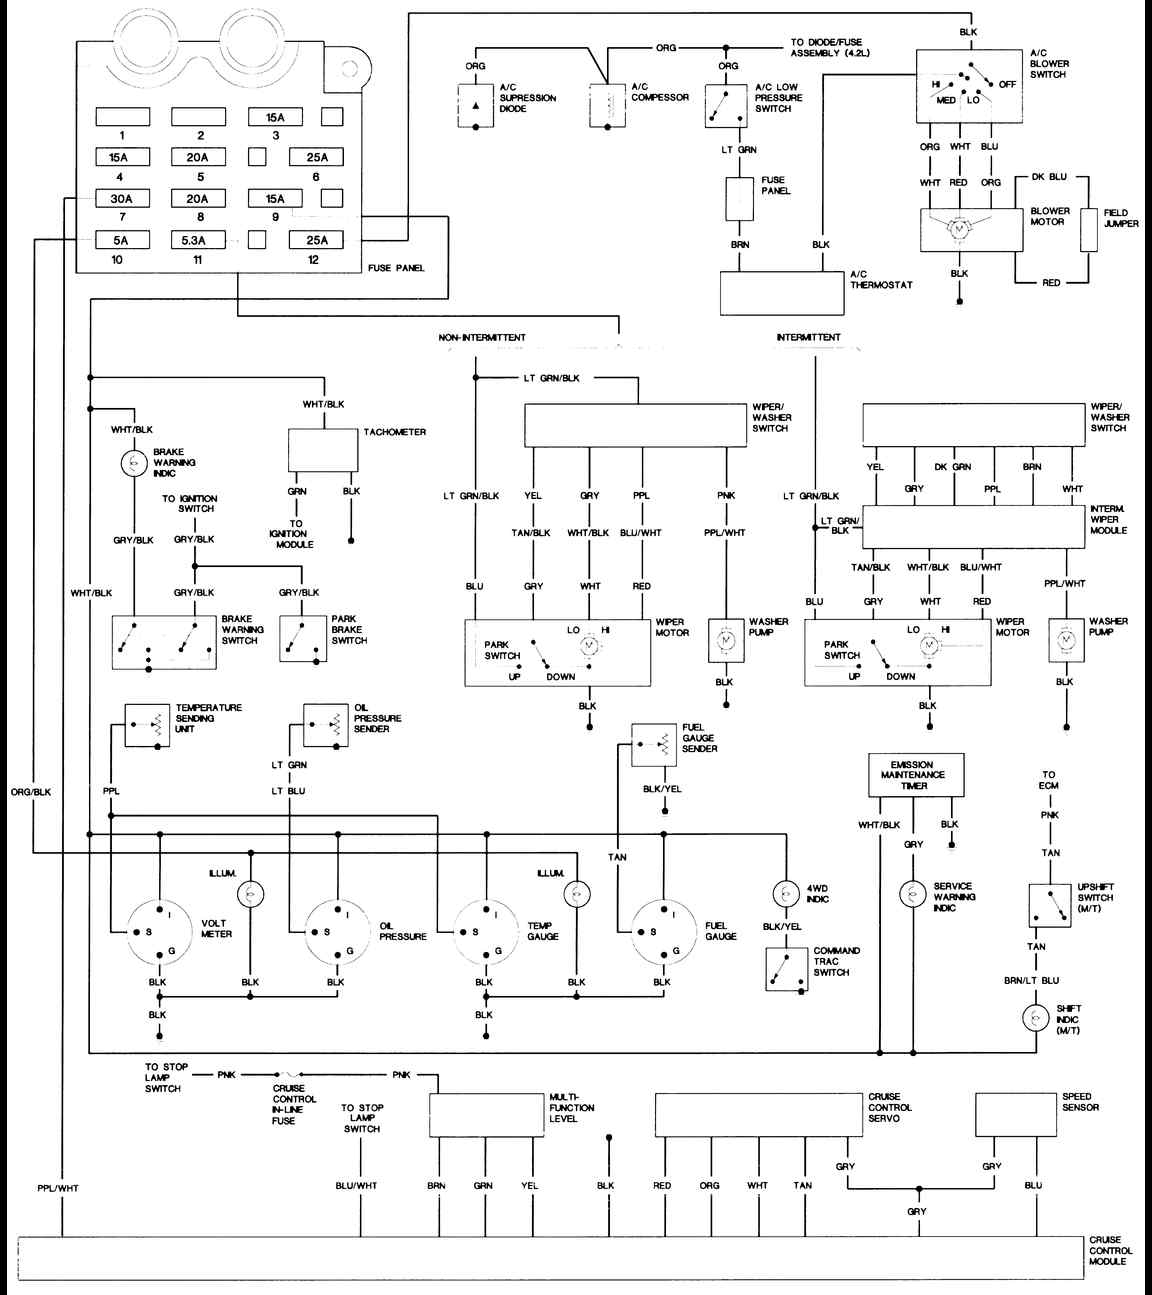 Wiring Diagram Jeep Wrangler : Jeep wiring diagrams index freeautomechanic